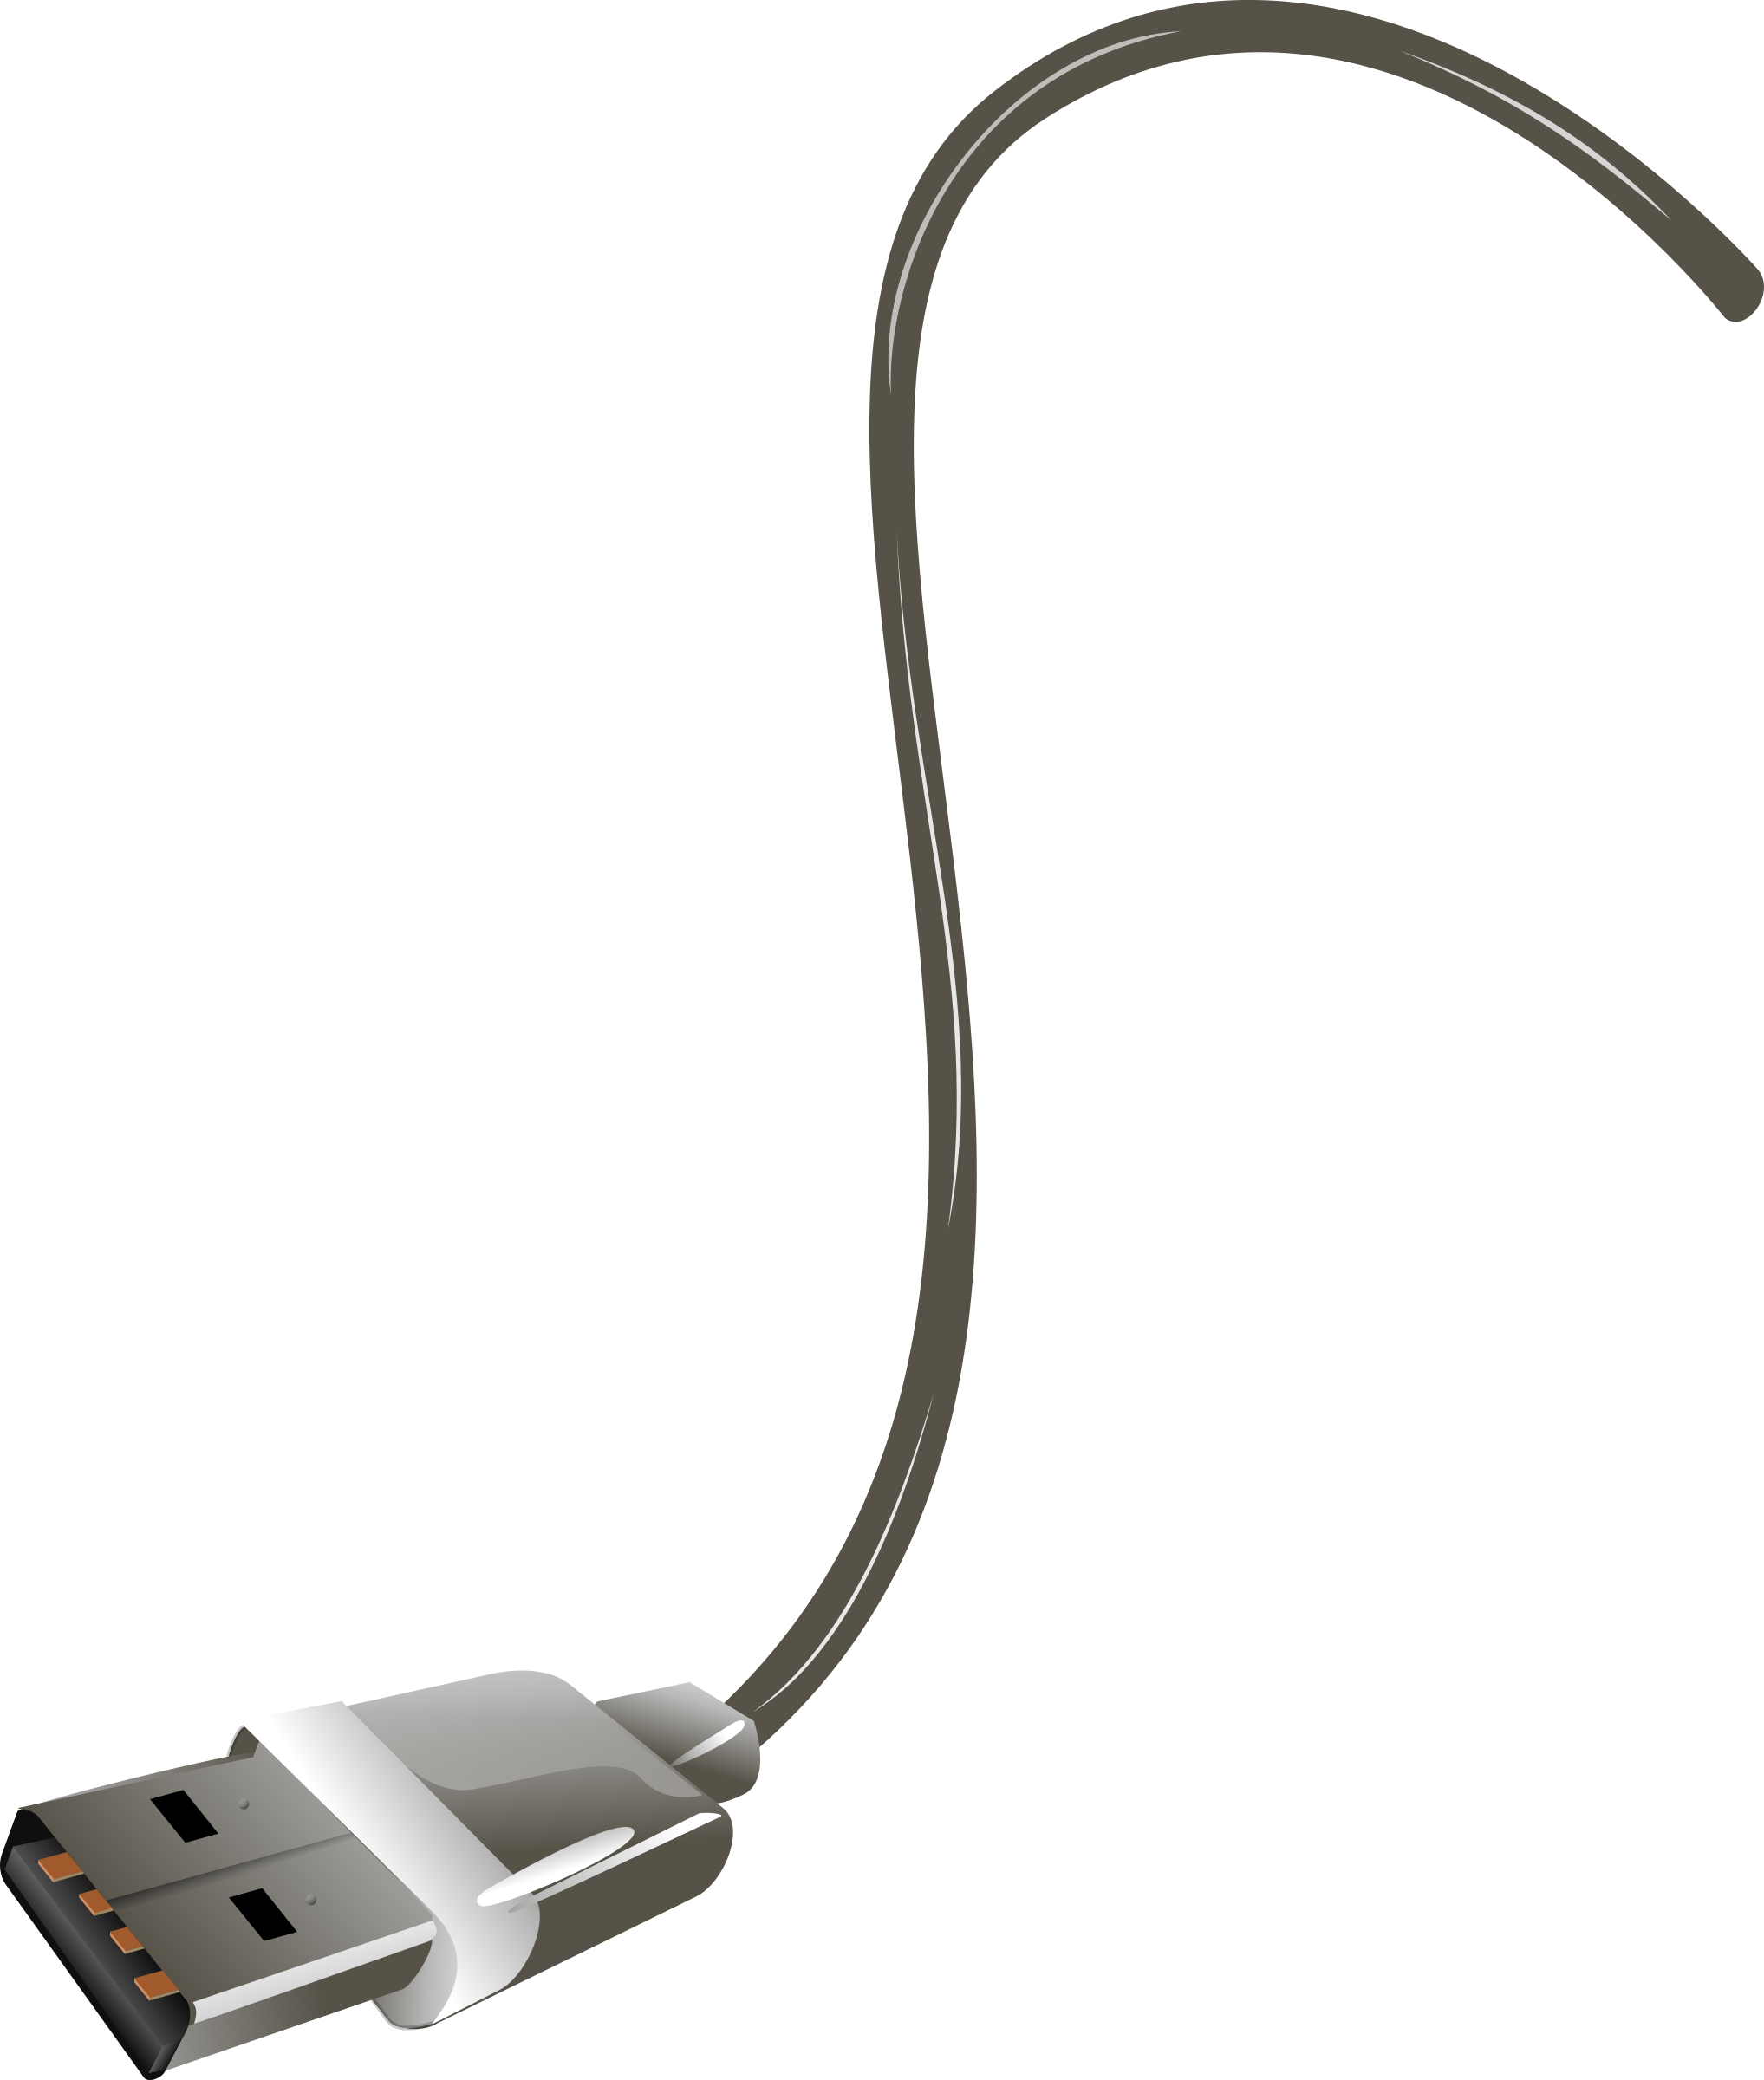 Double-headed USB cable, USB,